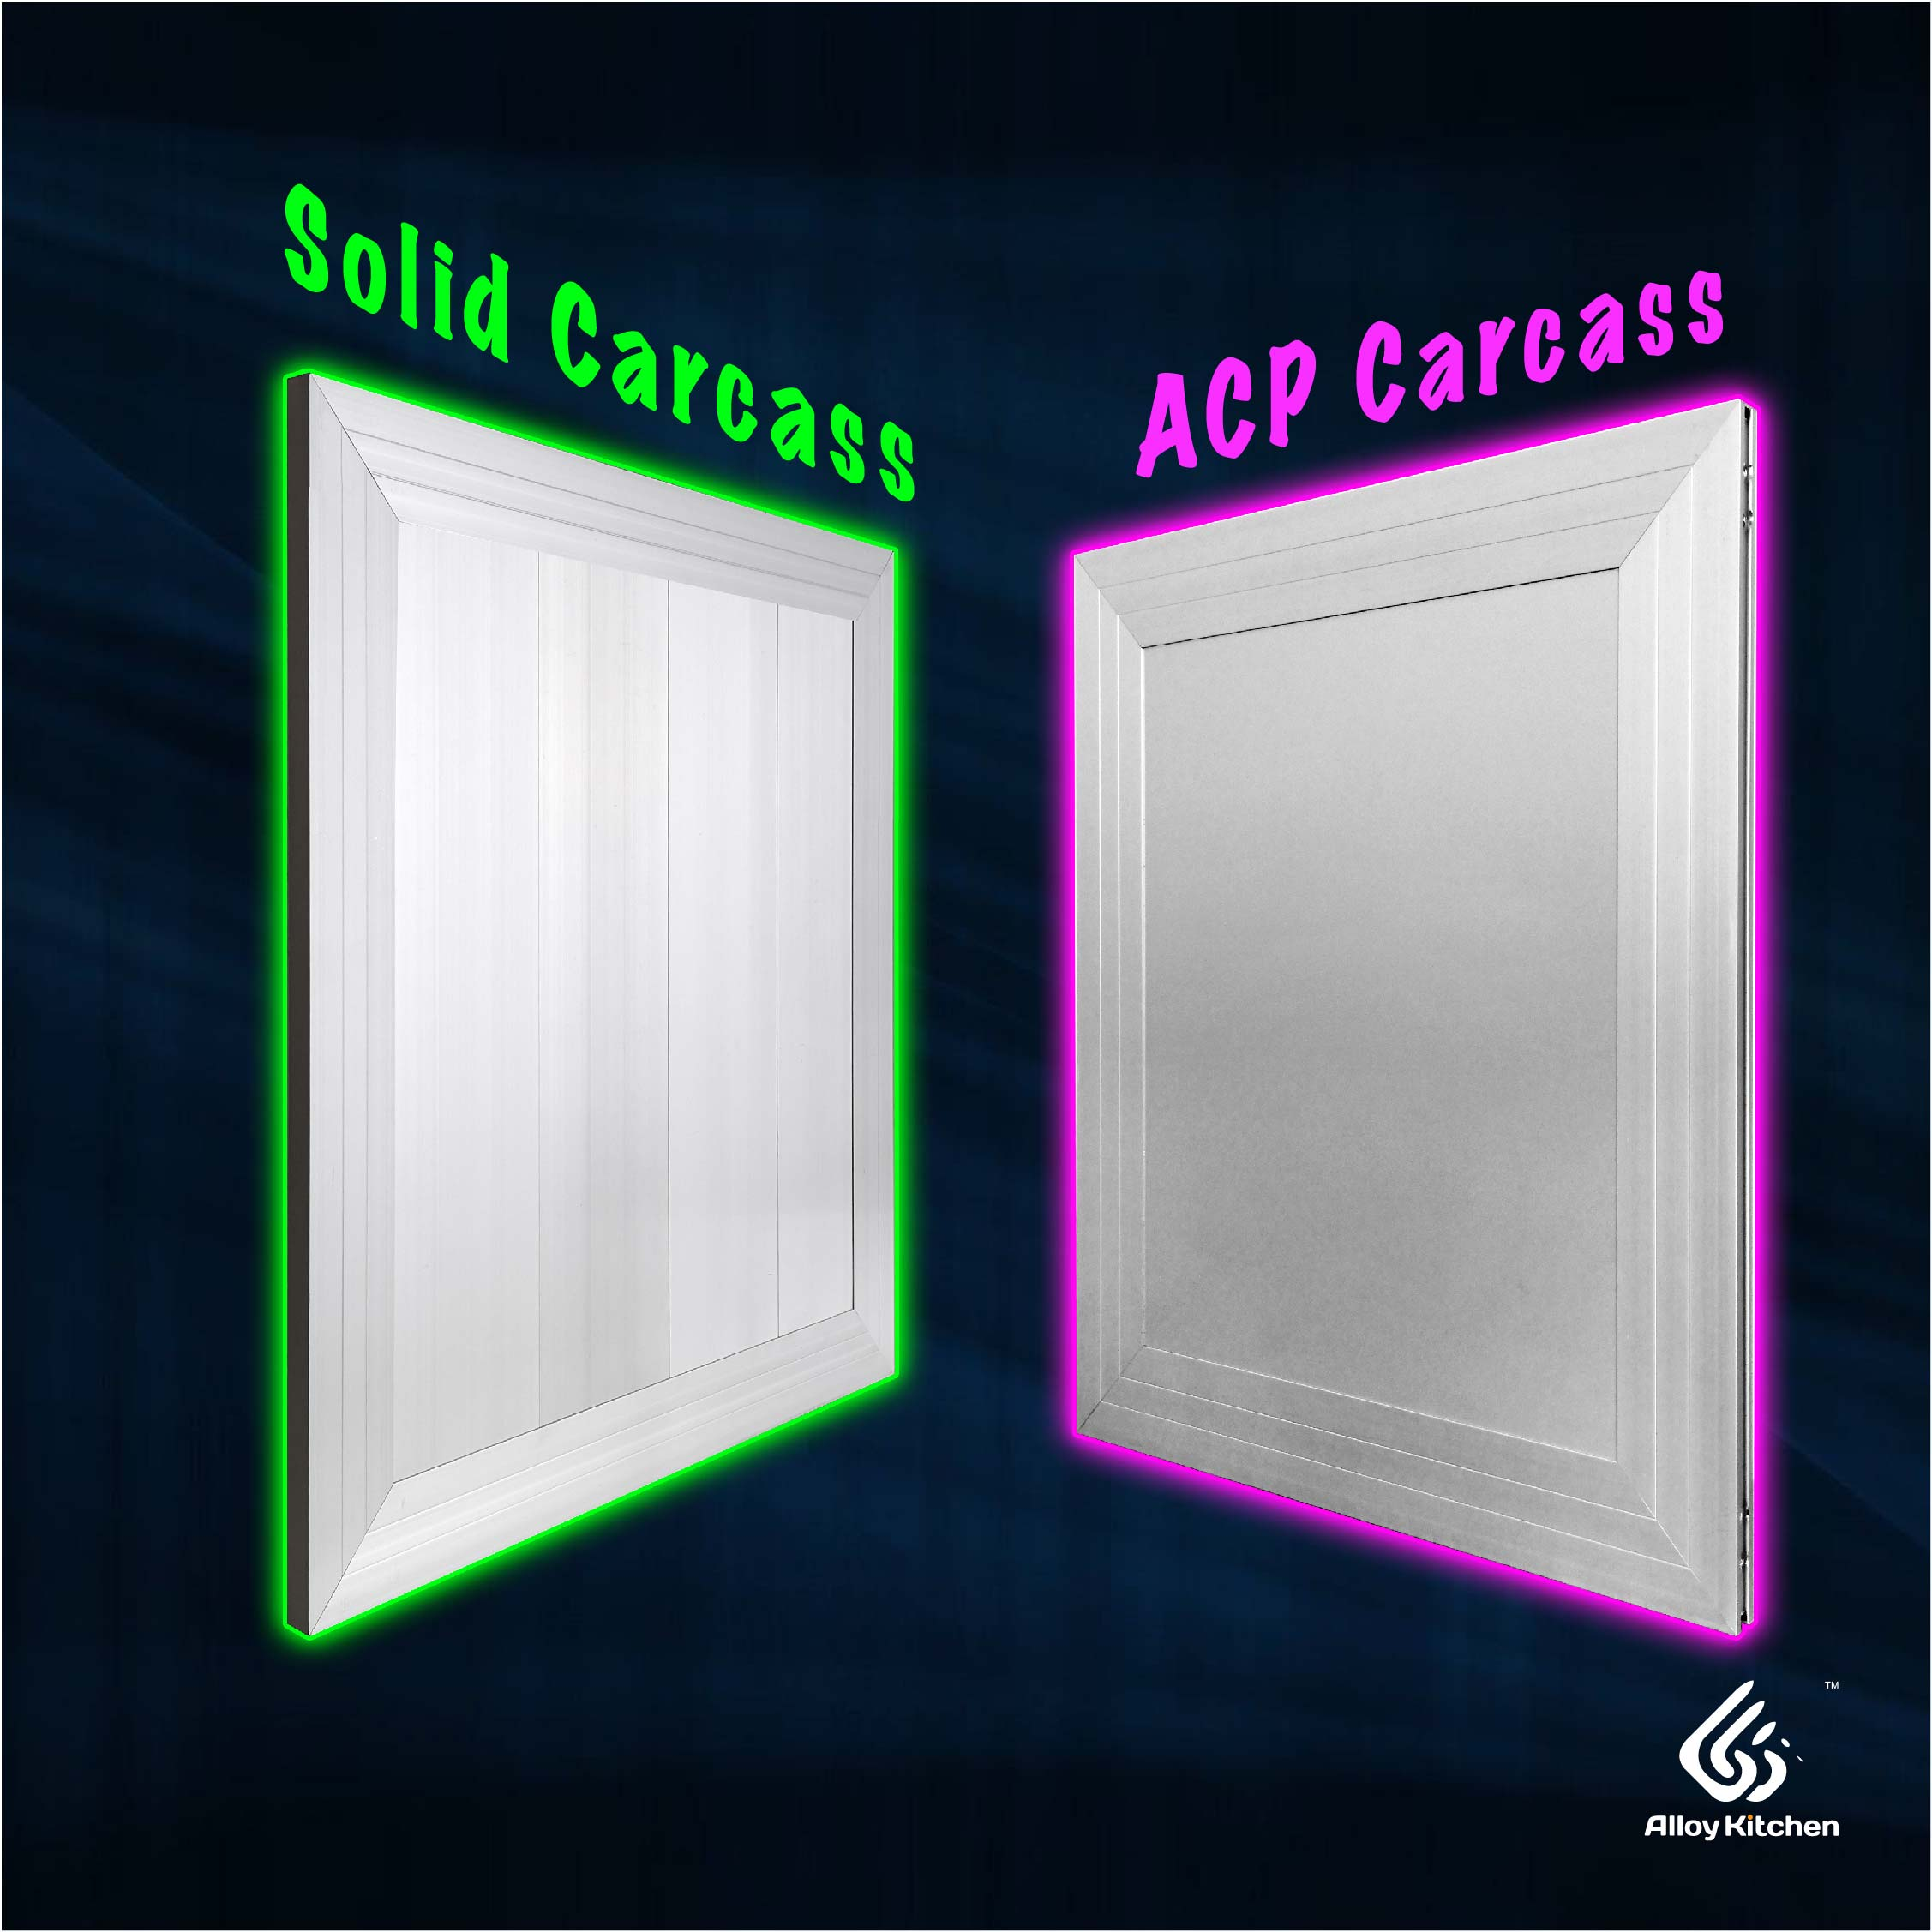 What Is The Difference Between ACP And Solid Carcass?